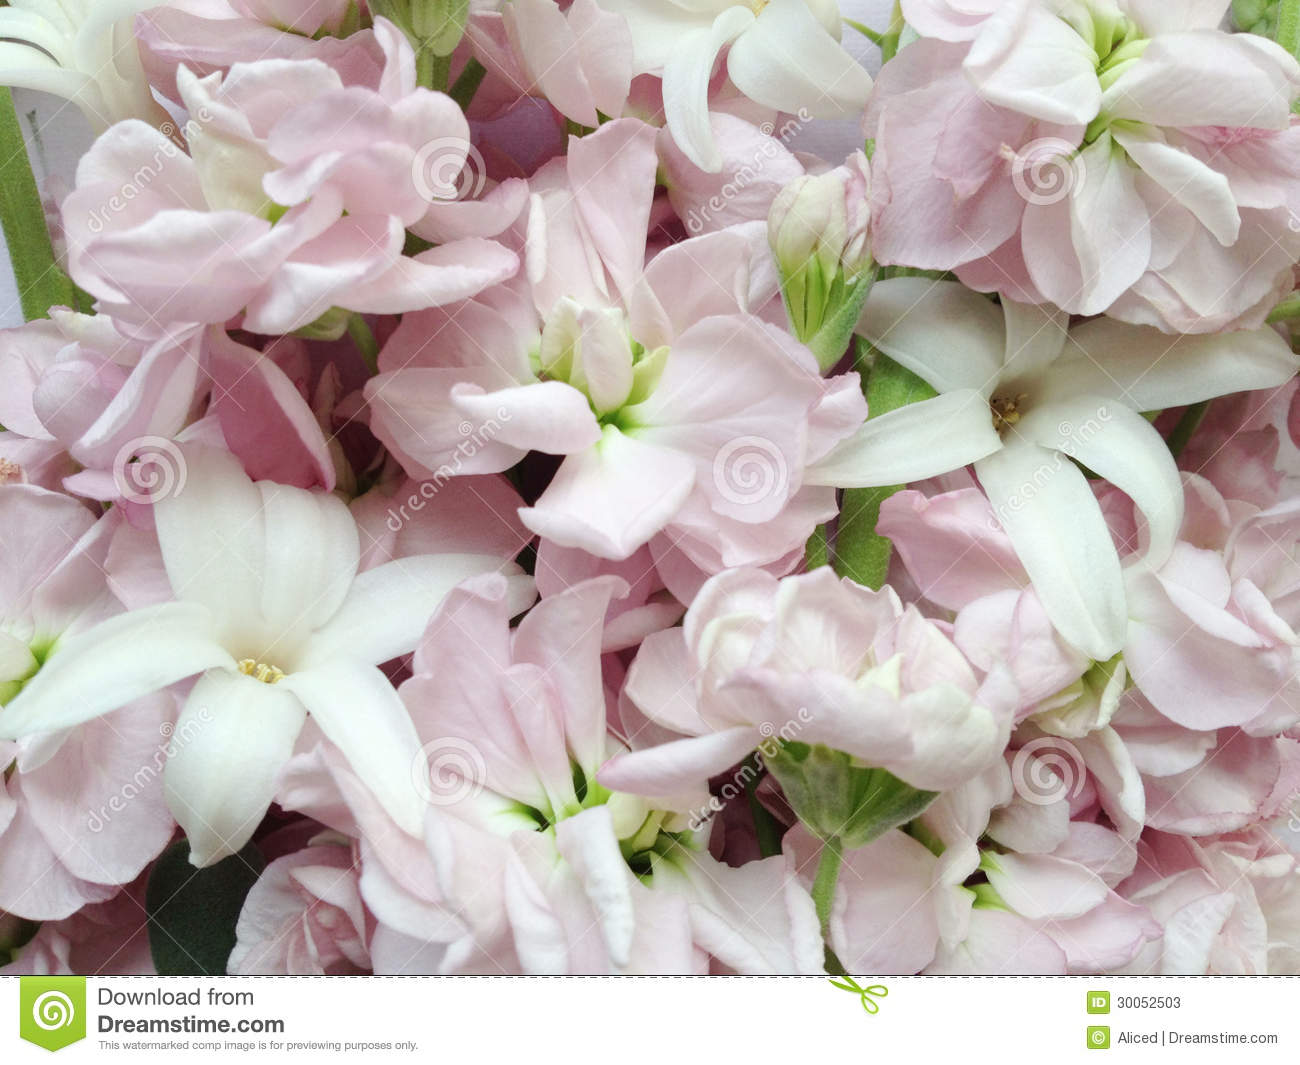 Pink stock and white hyacinth flowers stock photo image of white pastel spring flowers close up stock photos mightylinksfo Gallery